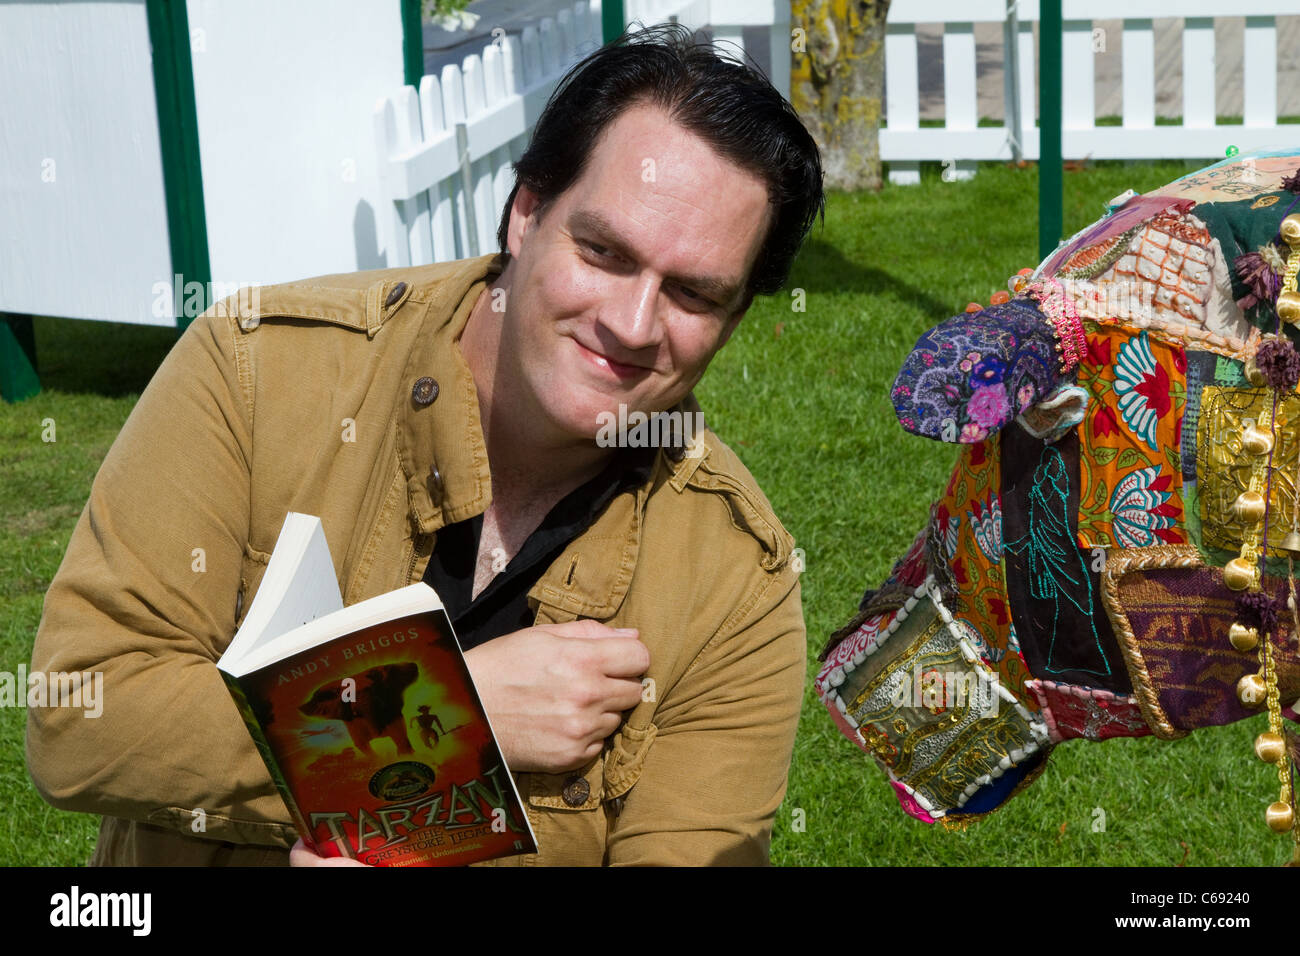 Andy Briggs Author at the 28th Southport Flower Show Showground Victoria Park, Southport,  2011 Merseyside, UK - Stock Image